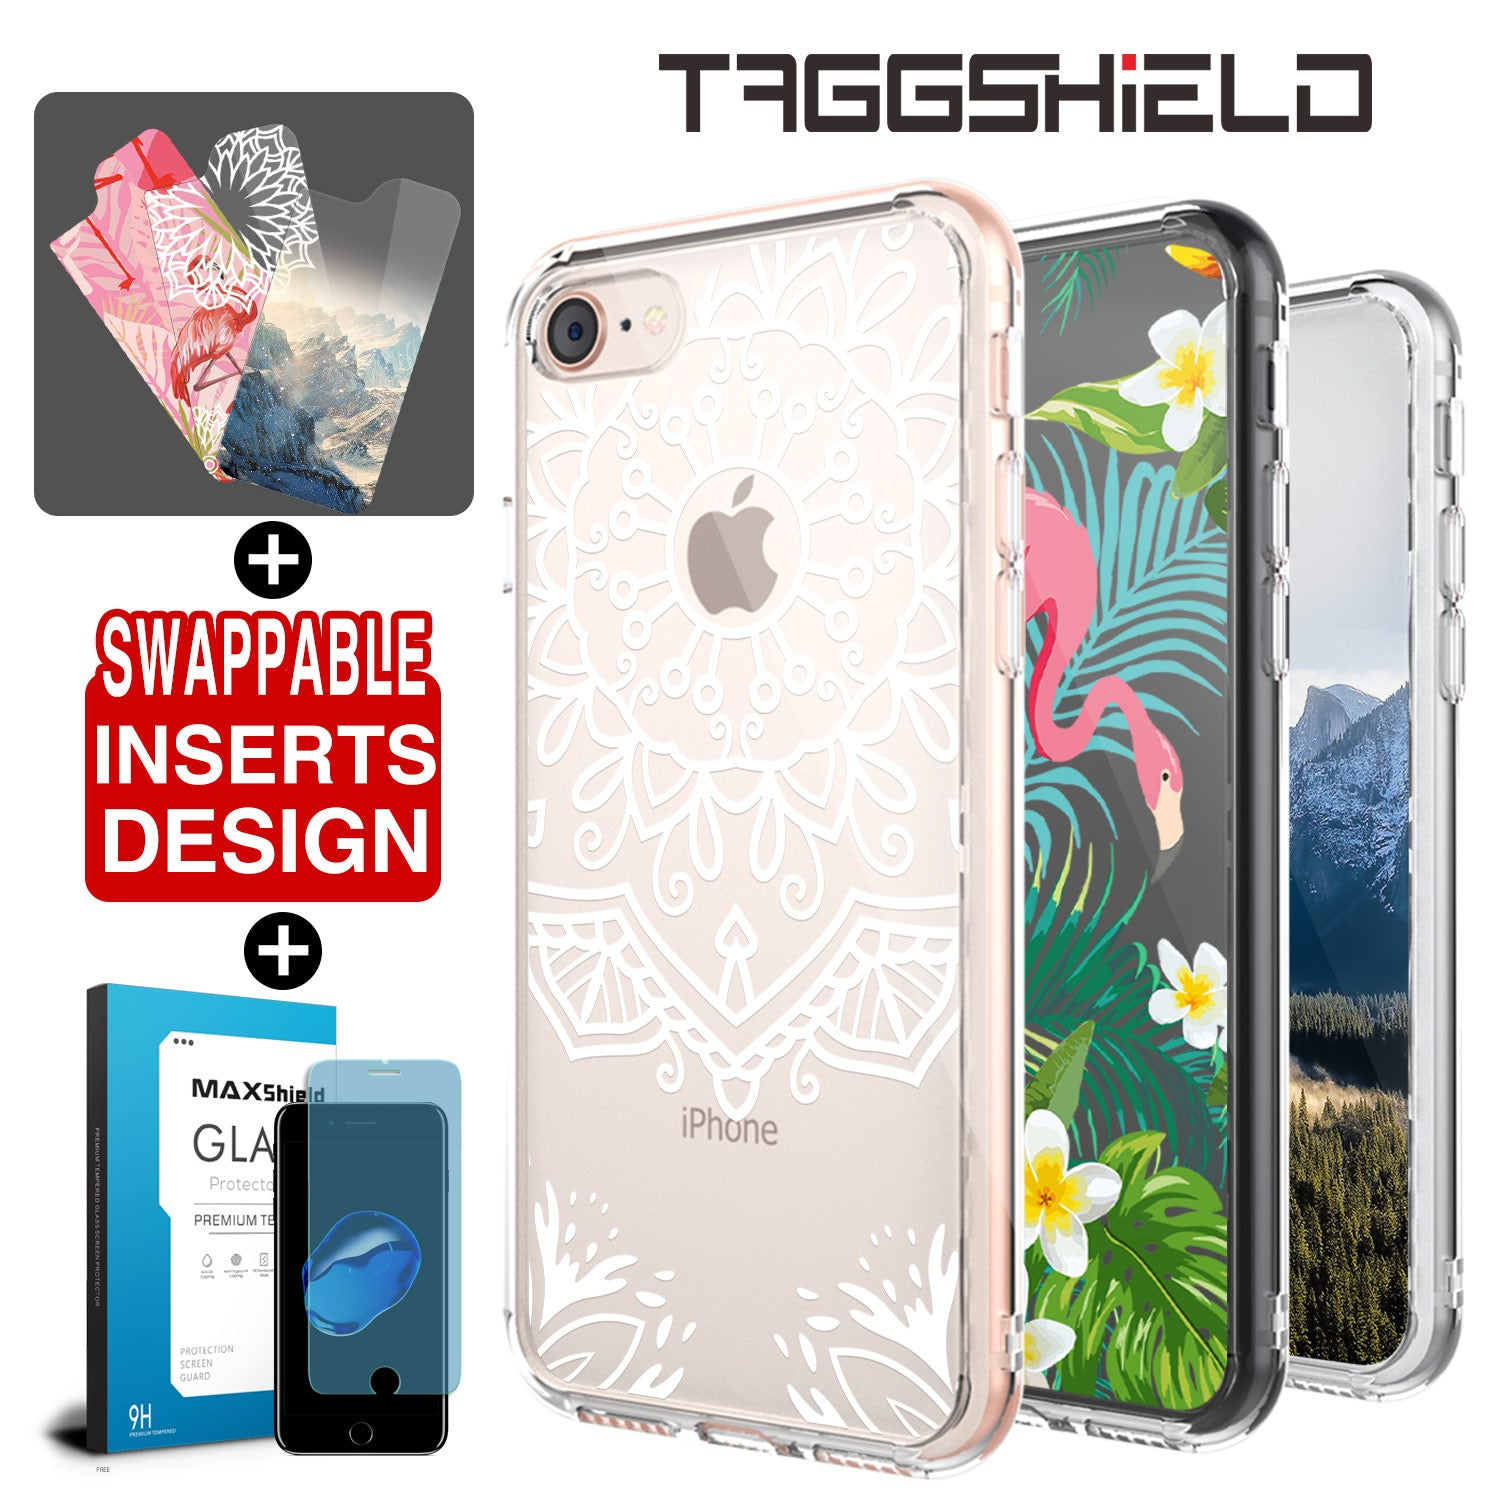 Genuine TAGGSHIELD For Apple Design Insert Cover For iPhone 8/7, 7/8 Plus